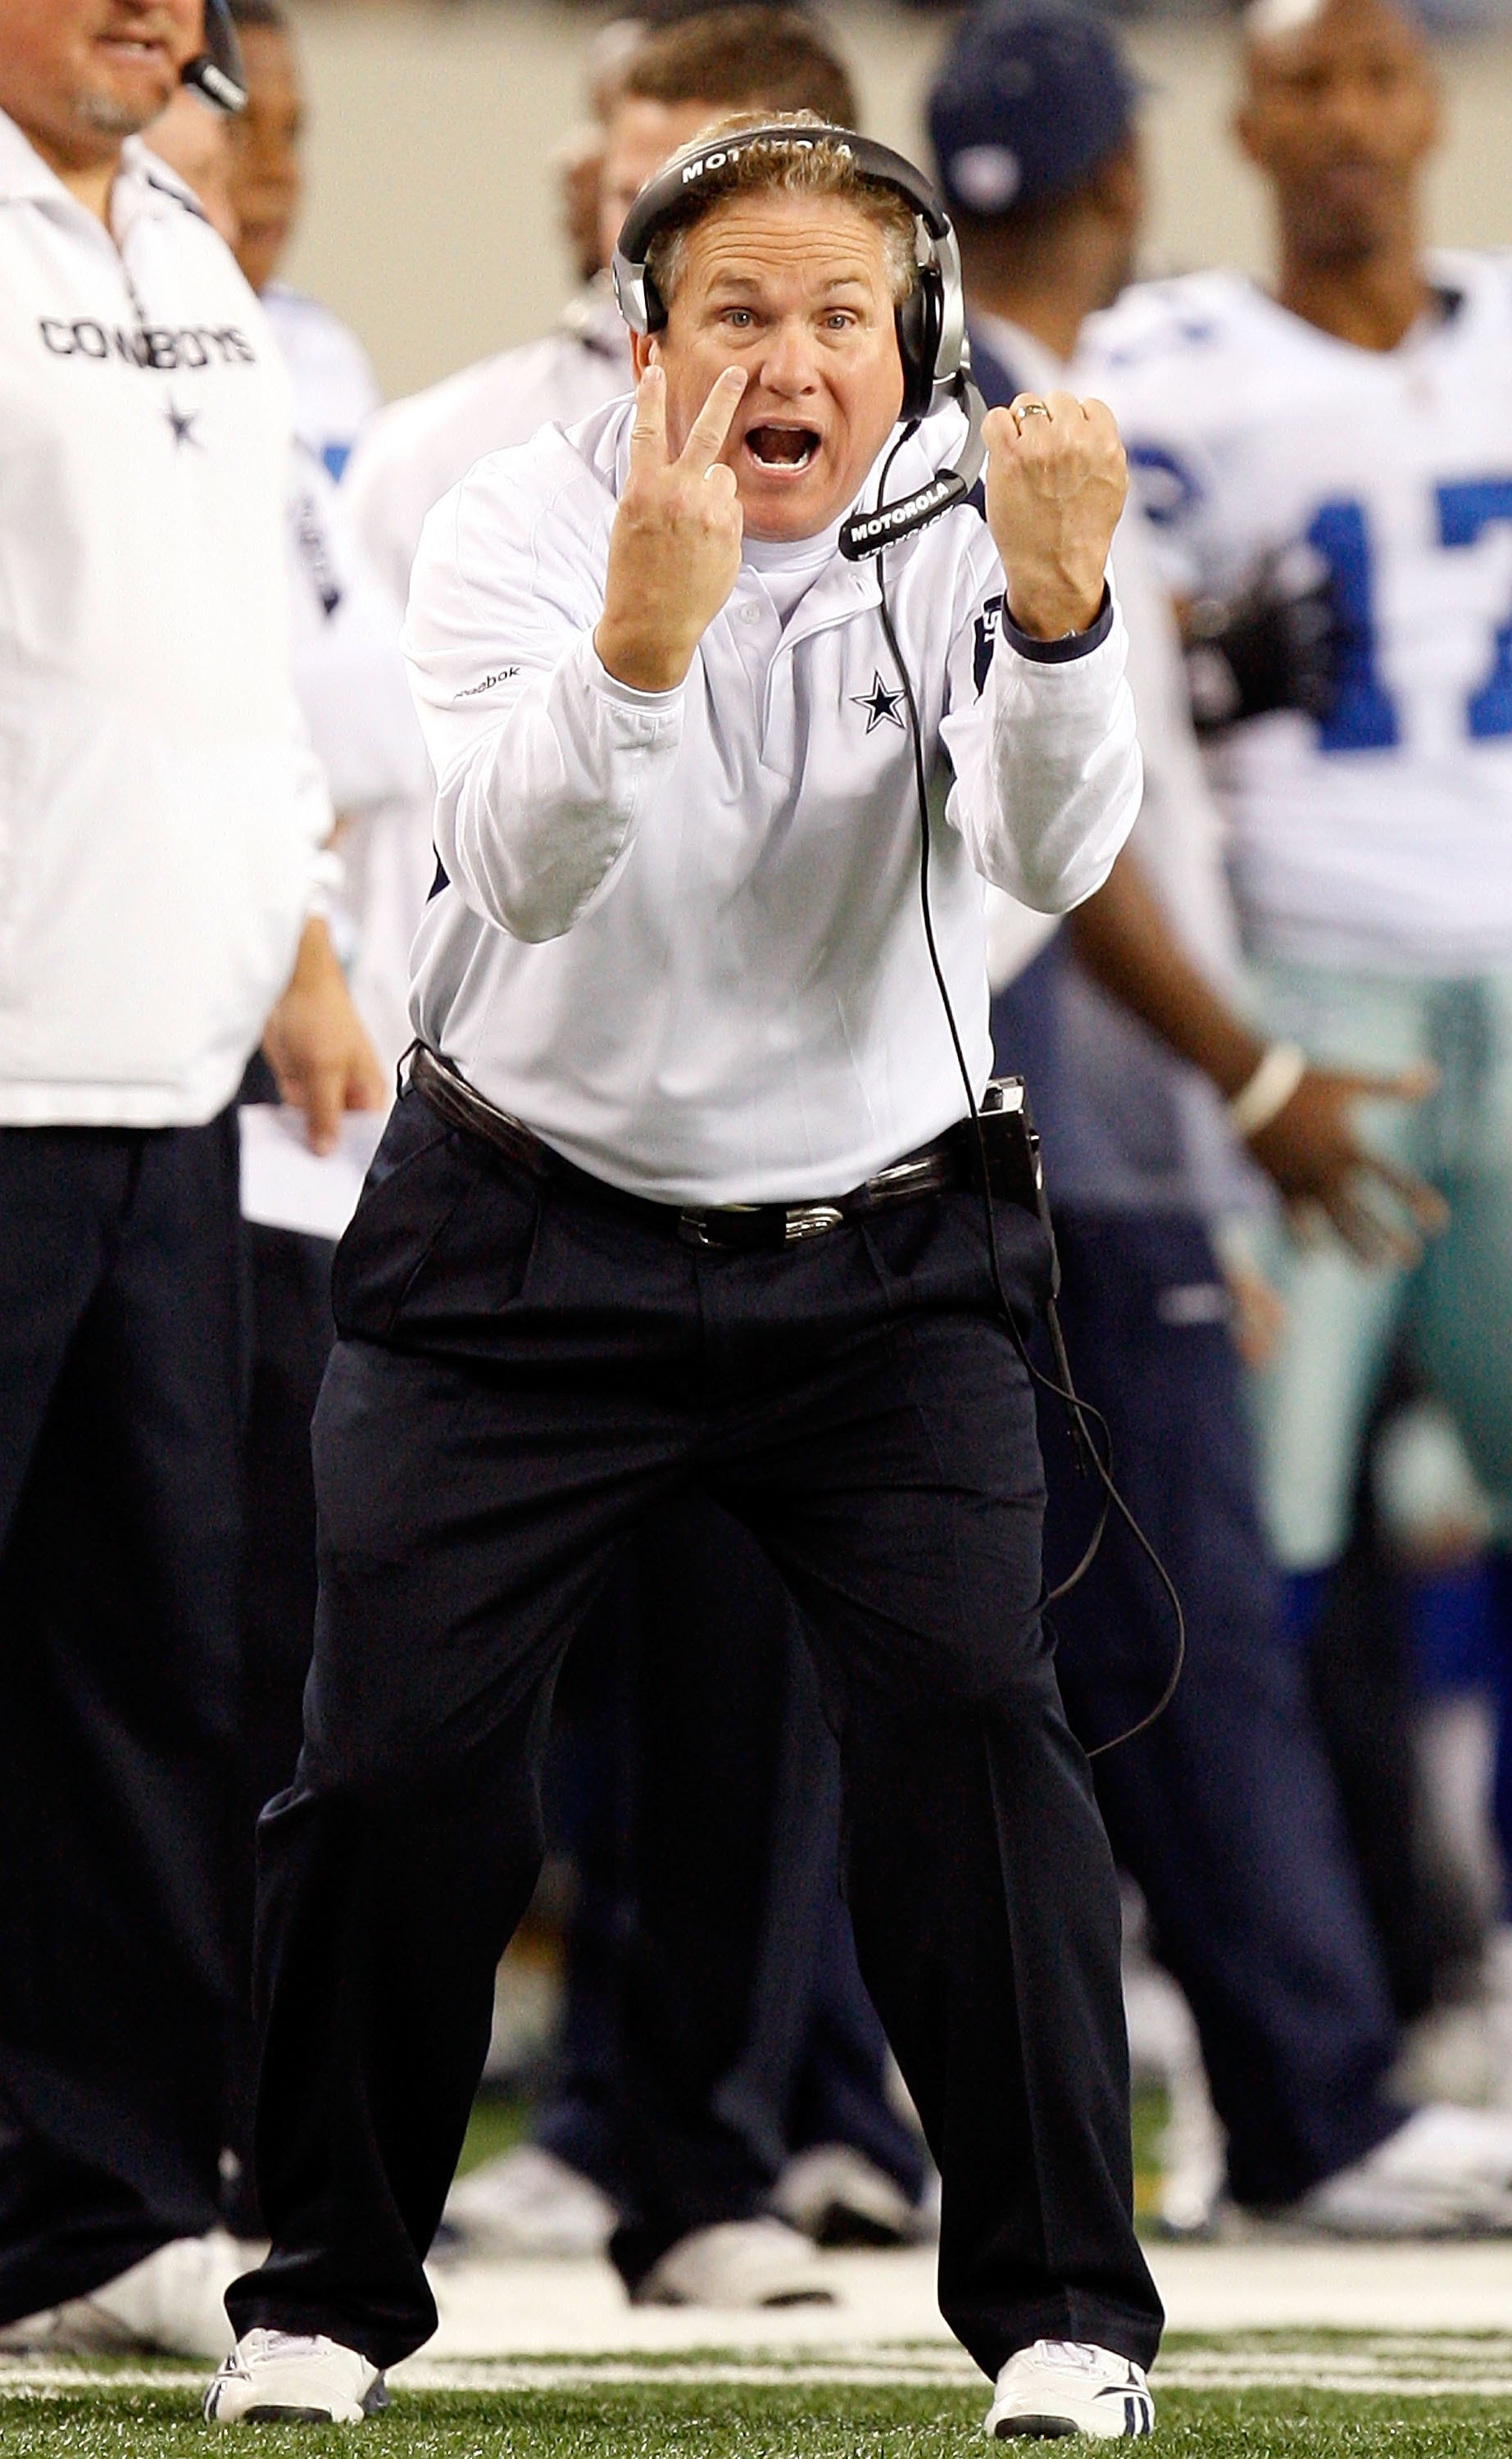 ARLINGTON, TX - JANUARY 9:  Assistant coach Dave Campo during the 2010 NFC wild-card playoff game at Cowboys Stadium on January 9, 2010 in Arlington, Texas. (Photo by Ronald Martinez/Getty Images)